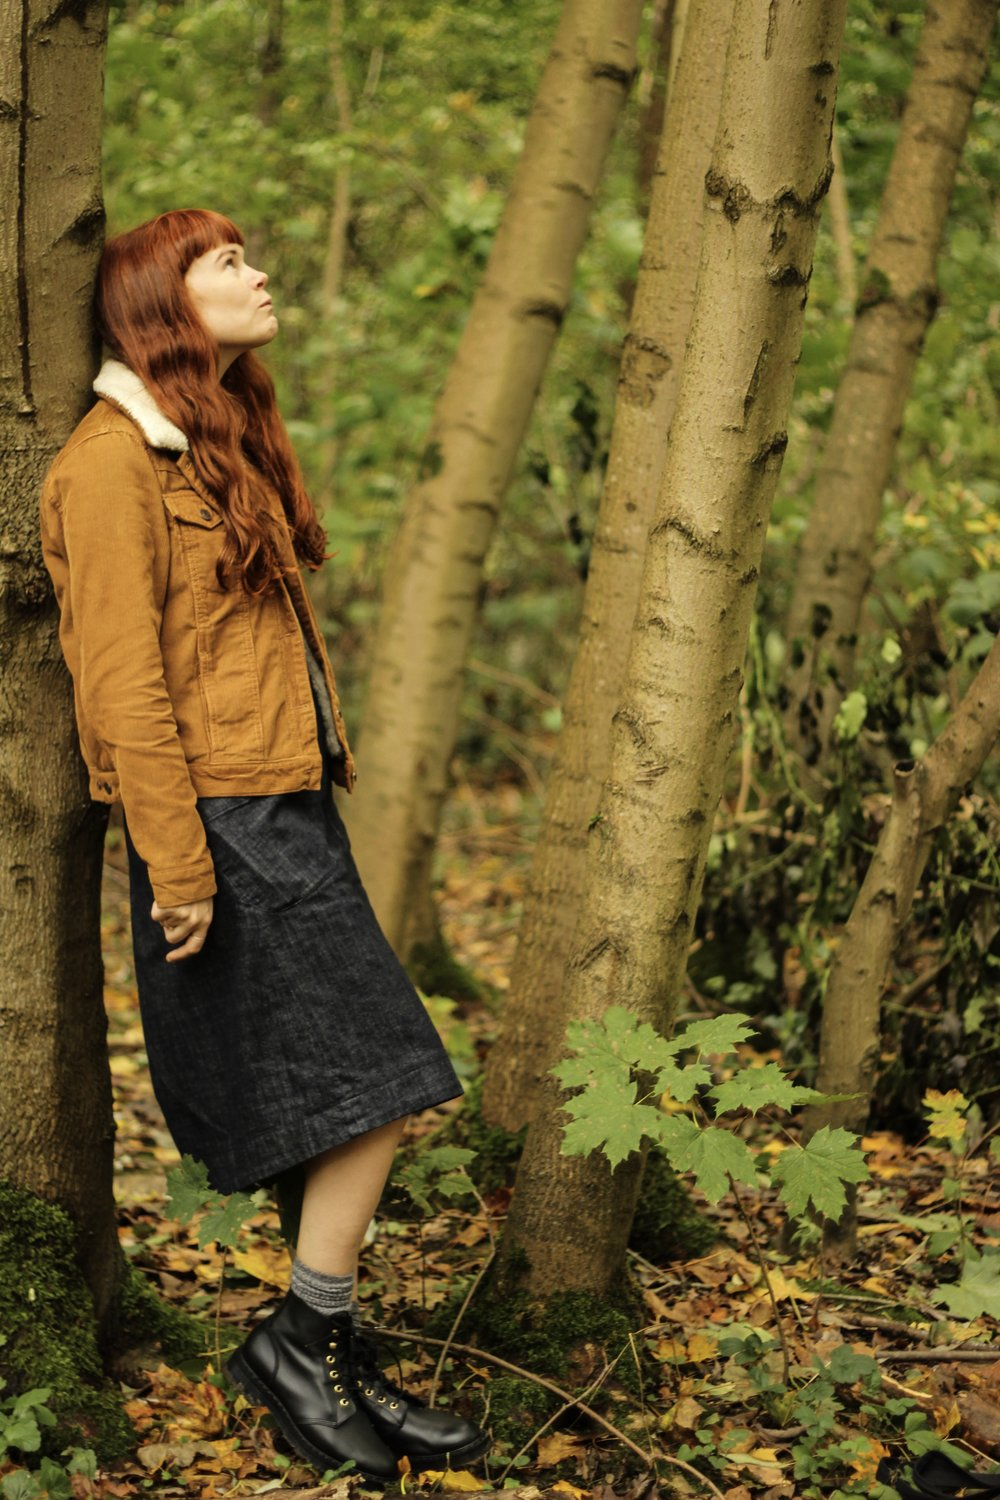 Girl in Woods in Autumn